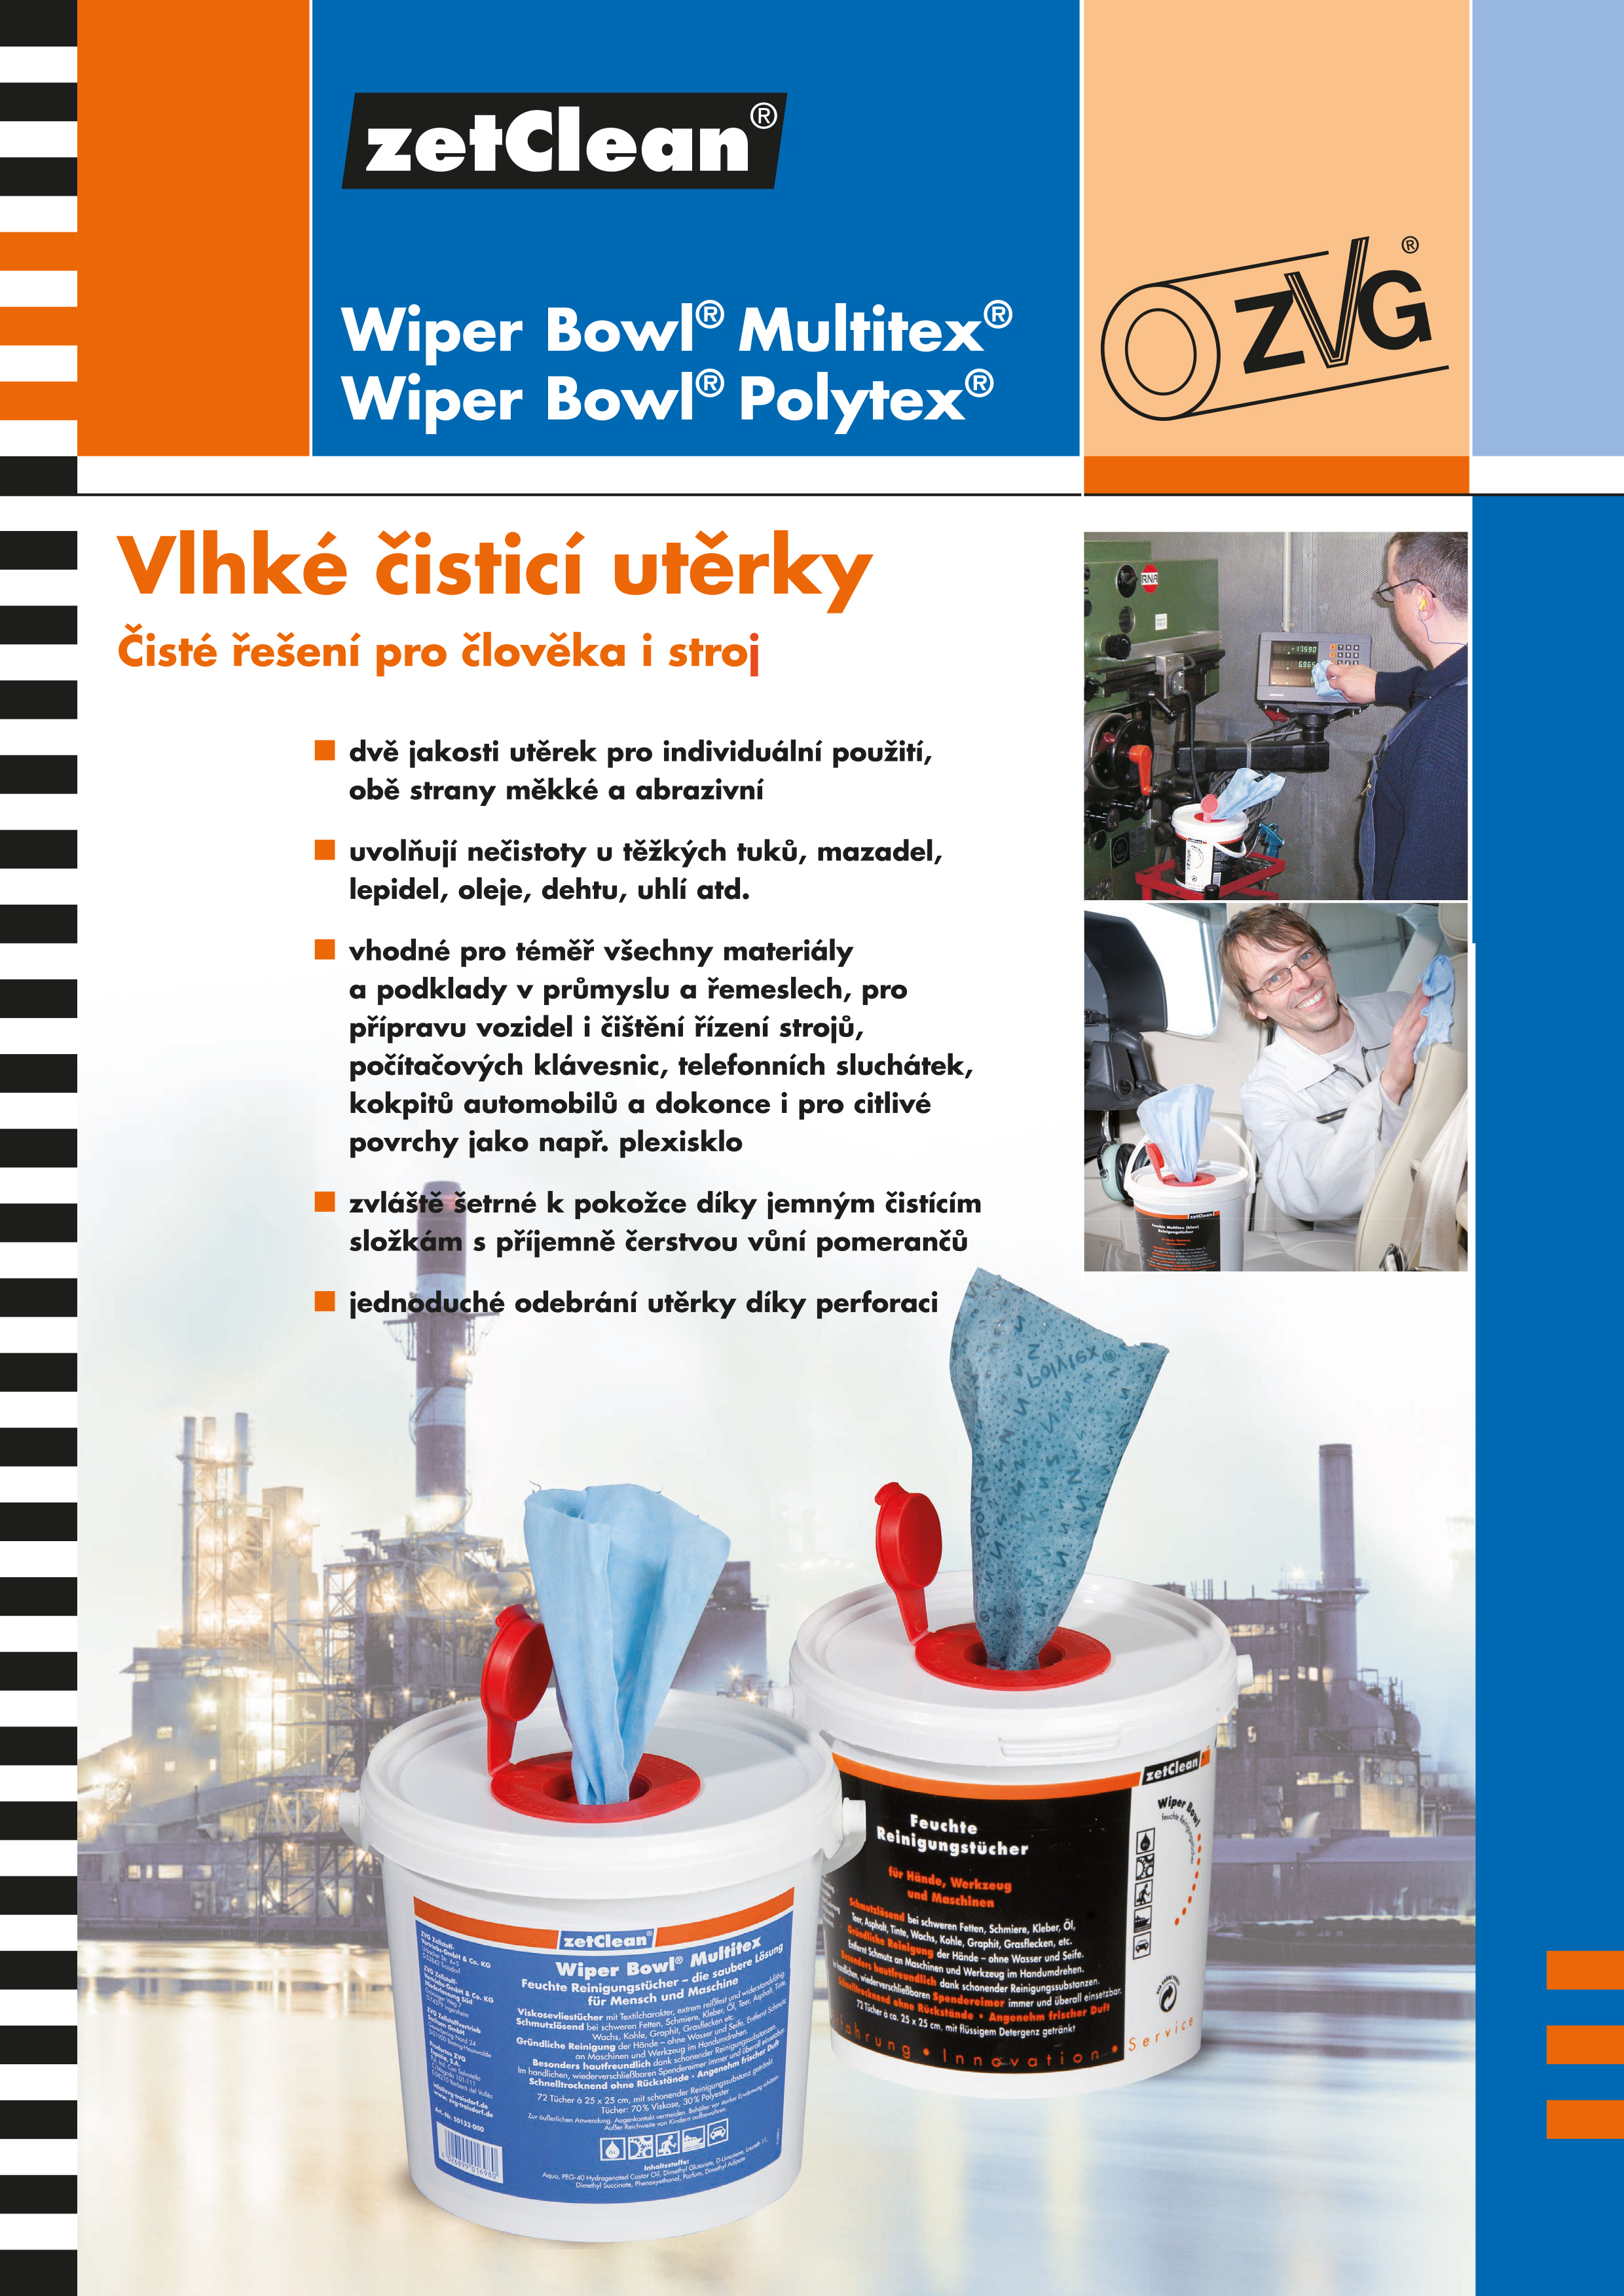 images/letaky/Polytex_Multitex_wiper_bowl_CZ_print.jpg